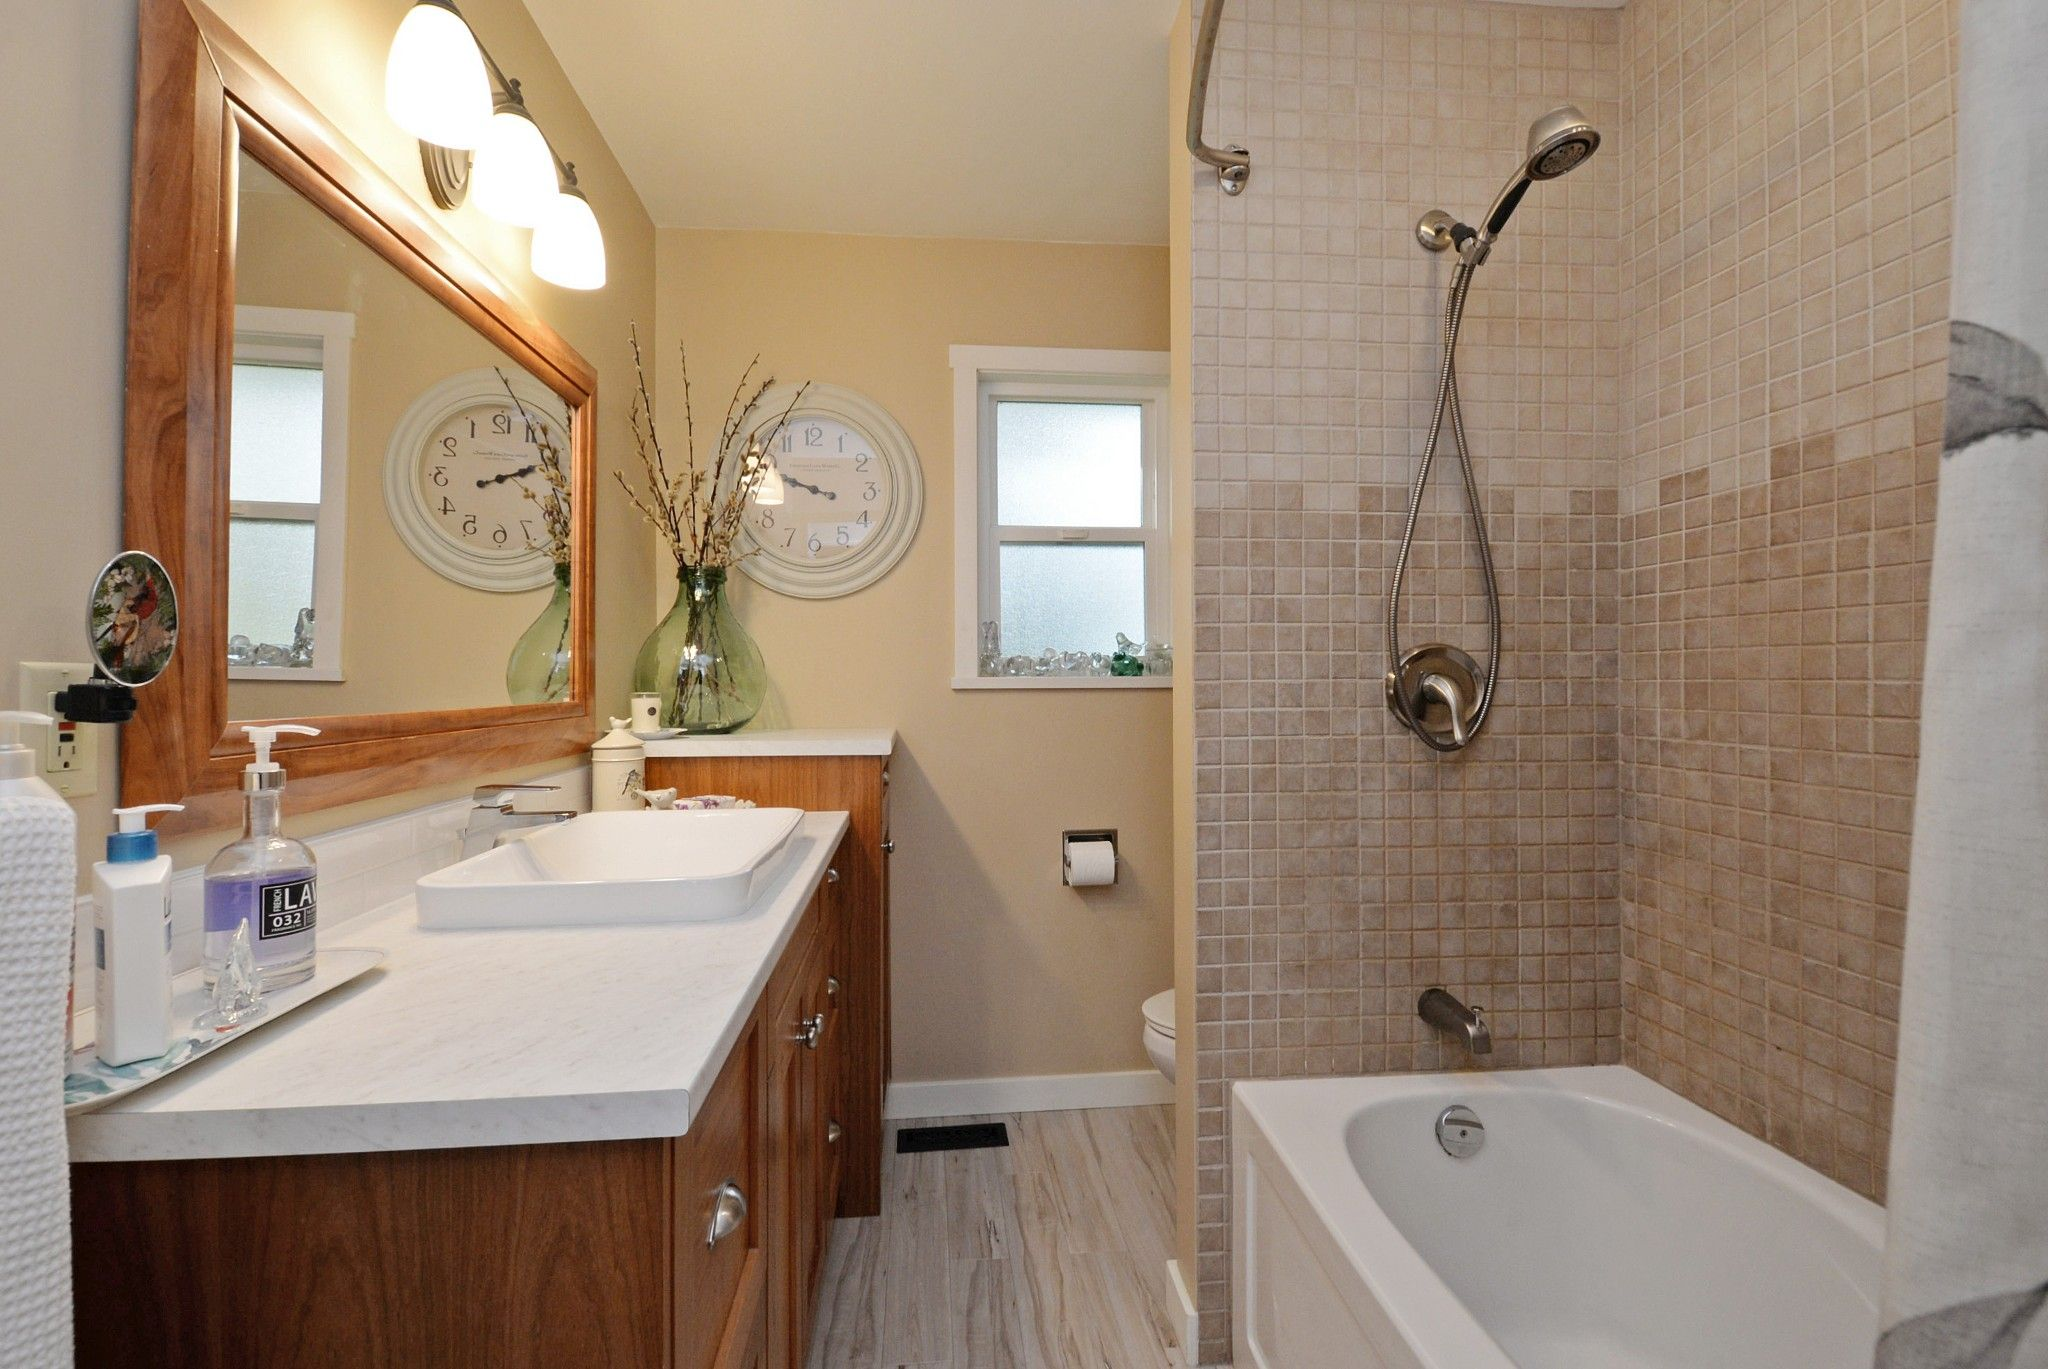 Photo 10: Photos: 5166 44 Avenue in Delta: Ladner Elementary House for sale (Ladner)  : MLS®# R2239309